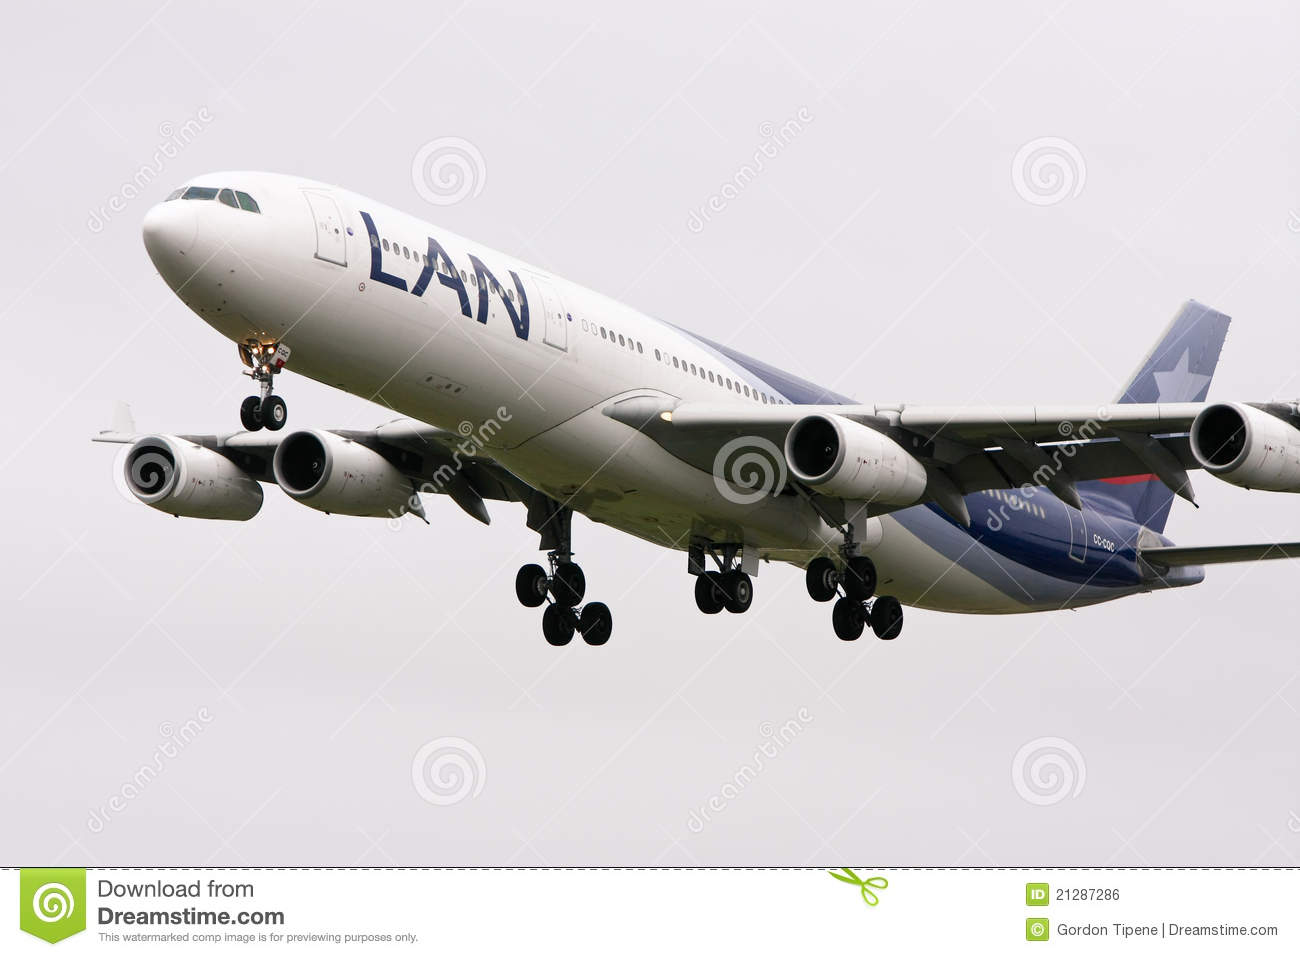 LAN Airlines Airbus A340.